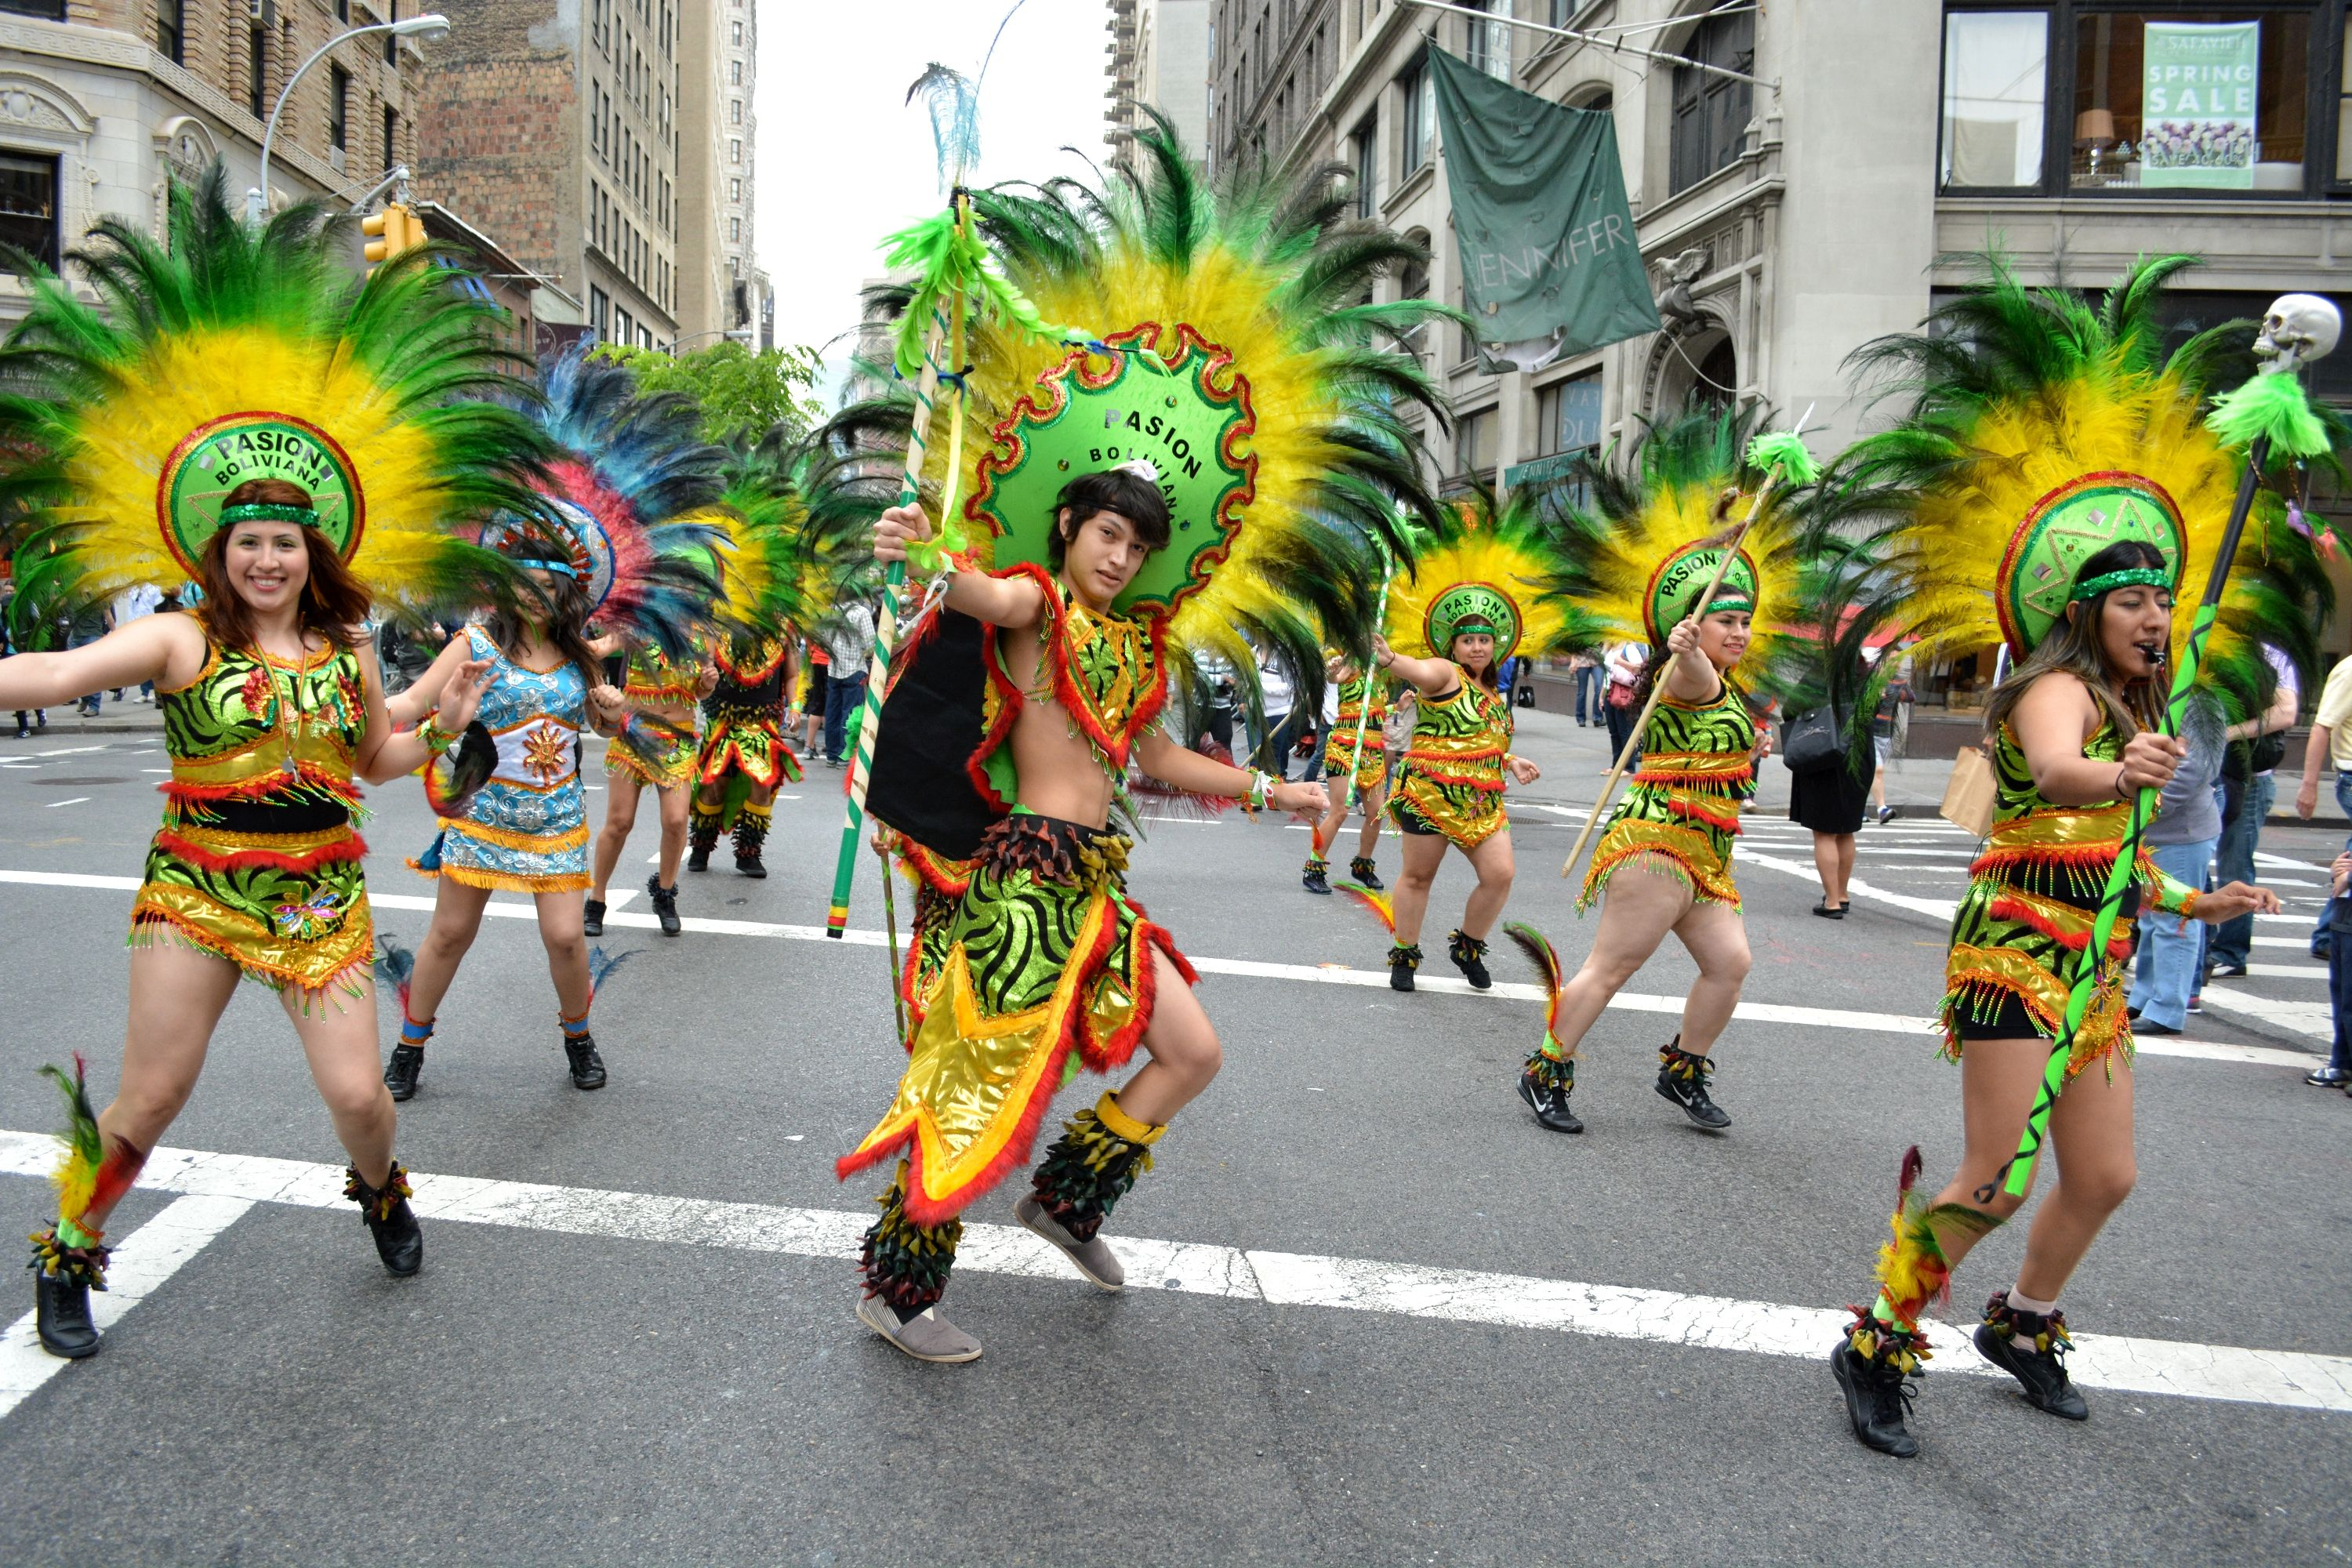 Annual Dance Parade and Festival